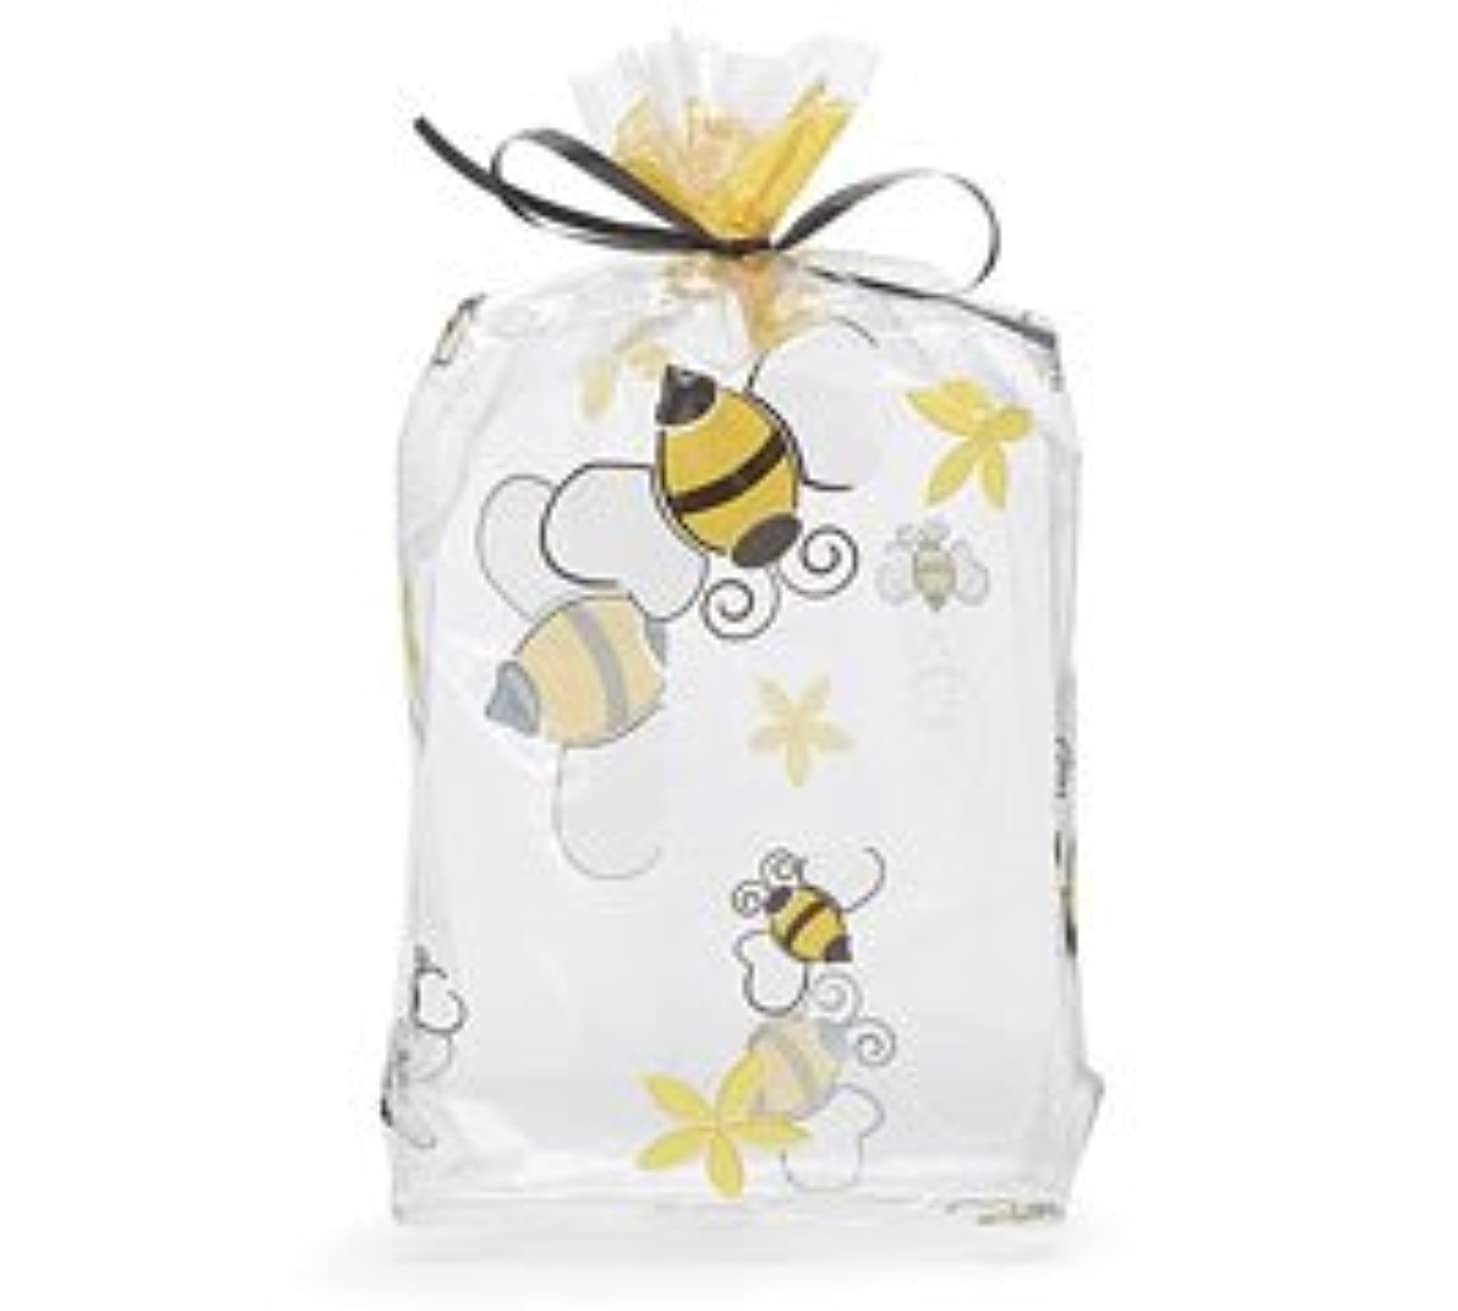 Cello Bags a Little Honey Bees Large - Pack of 20